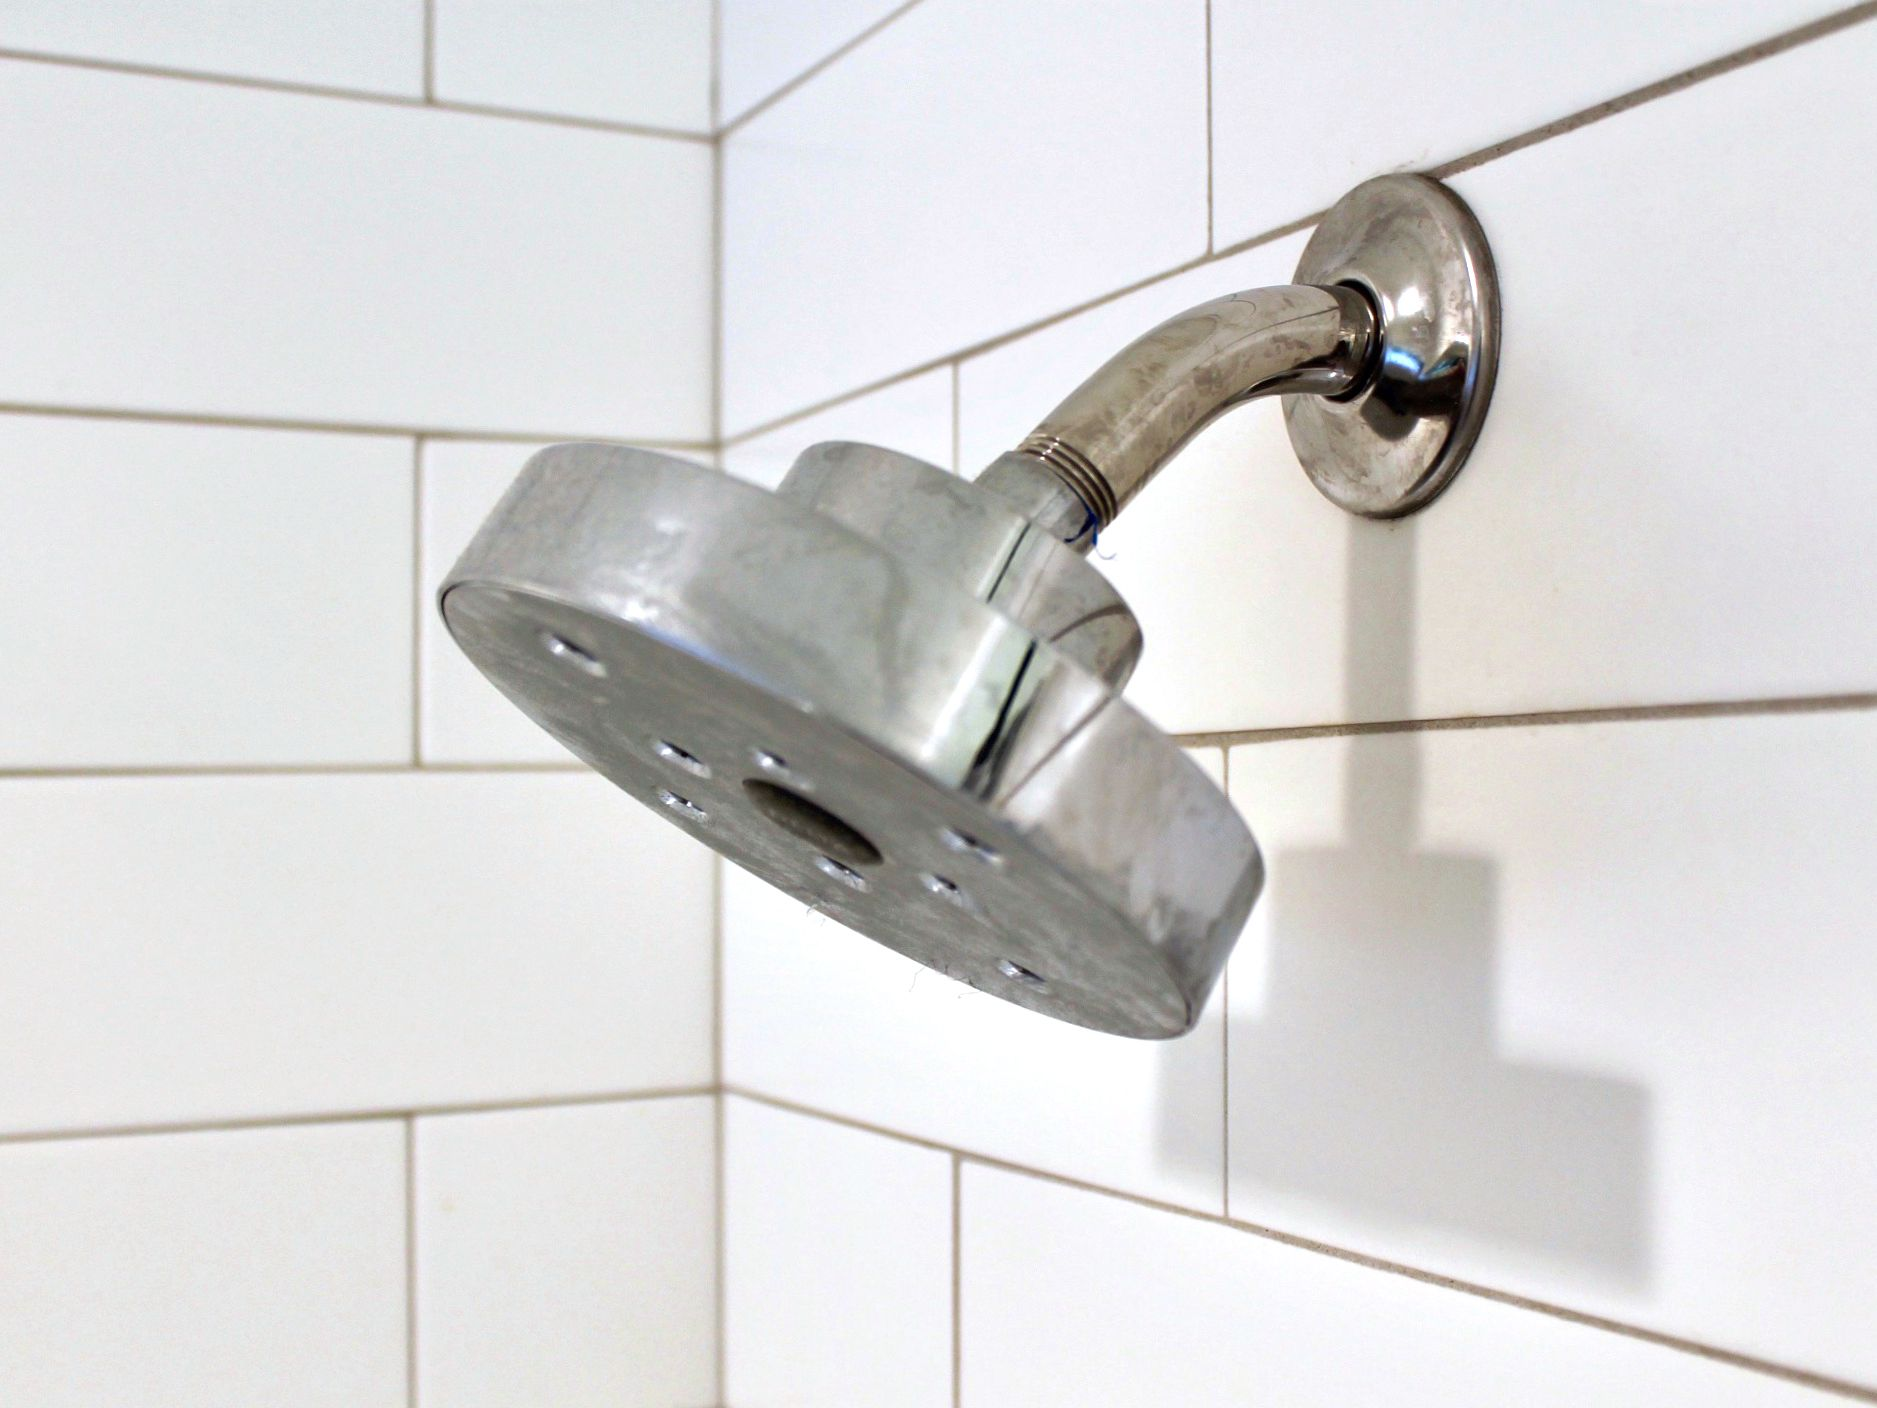 remove calcium deposits from a shower head